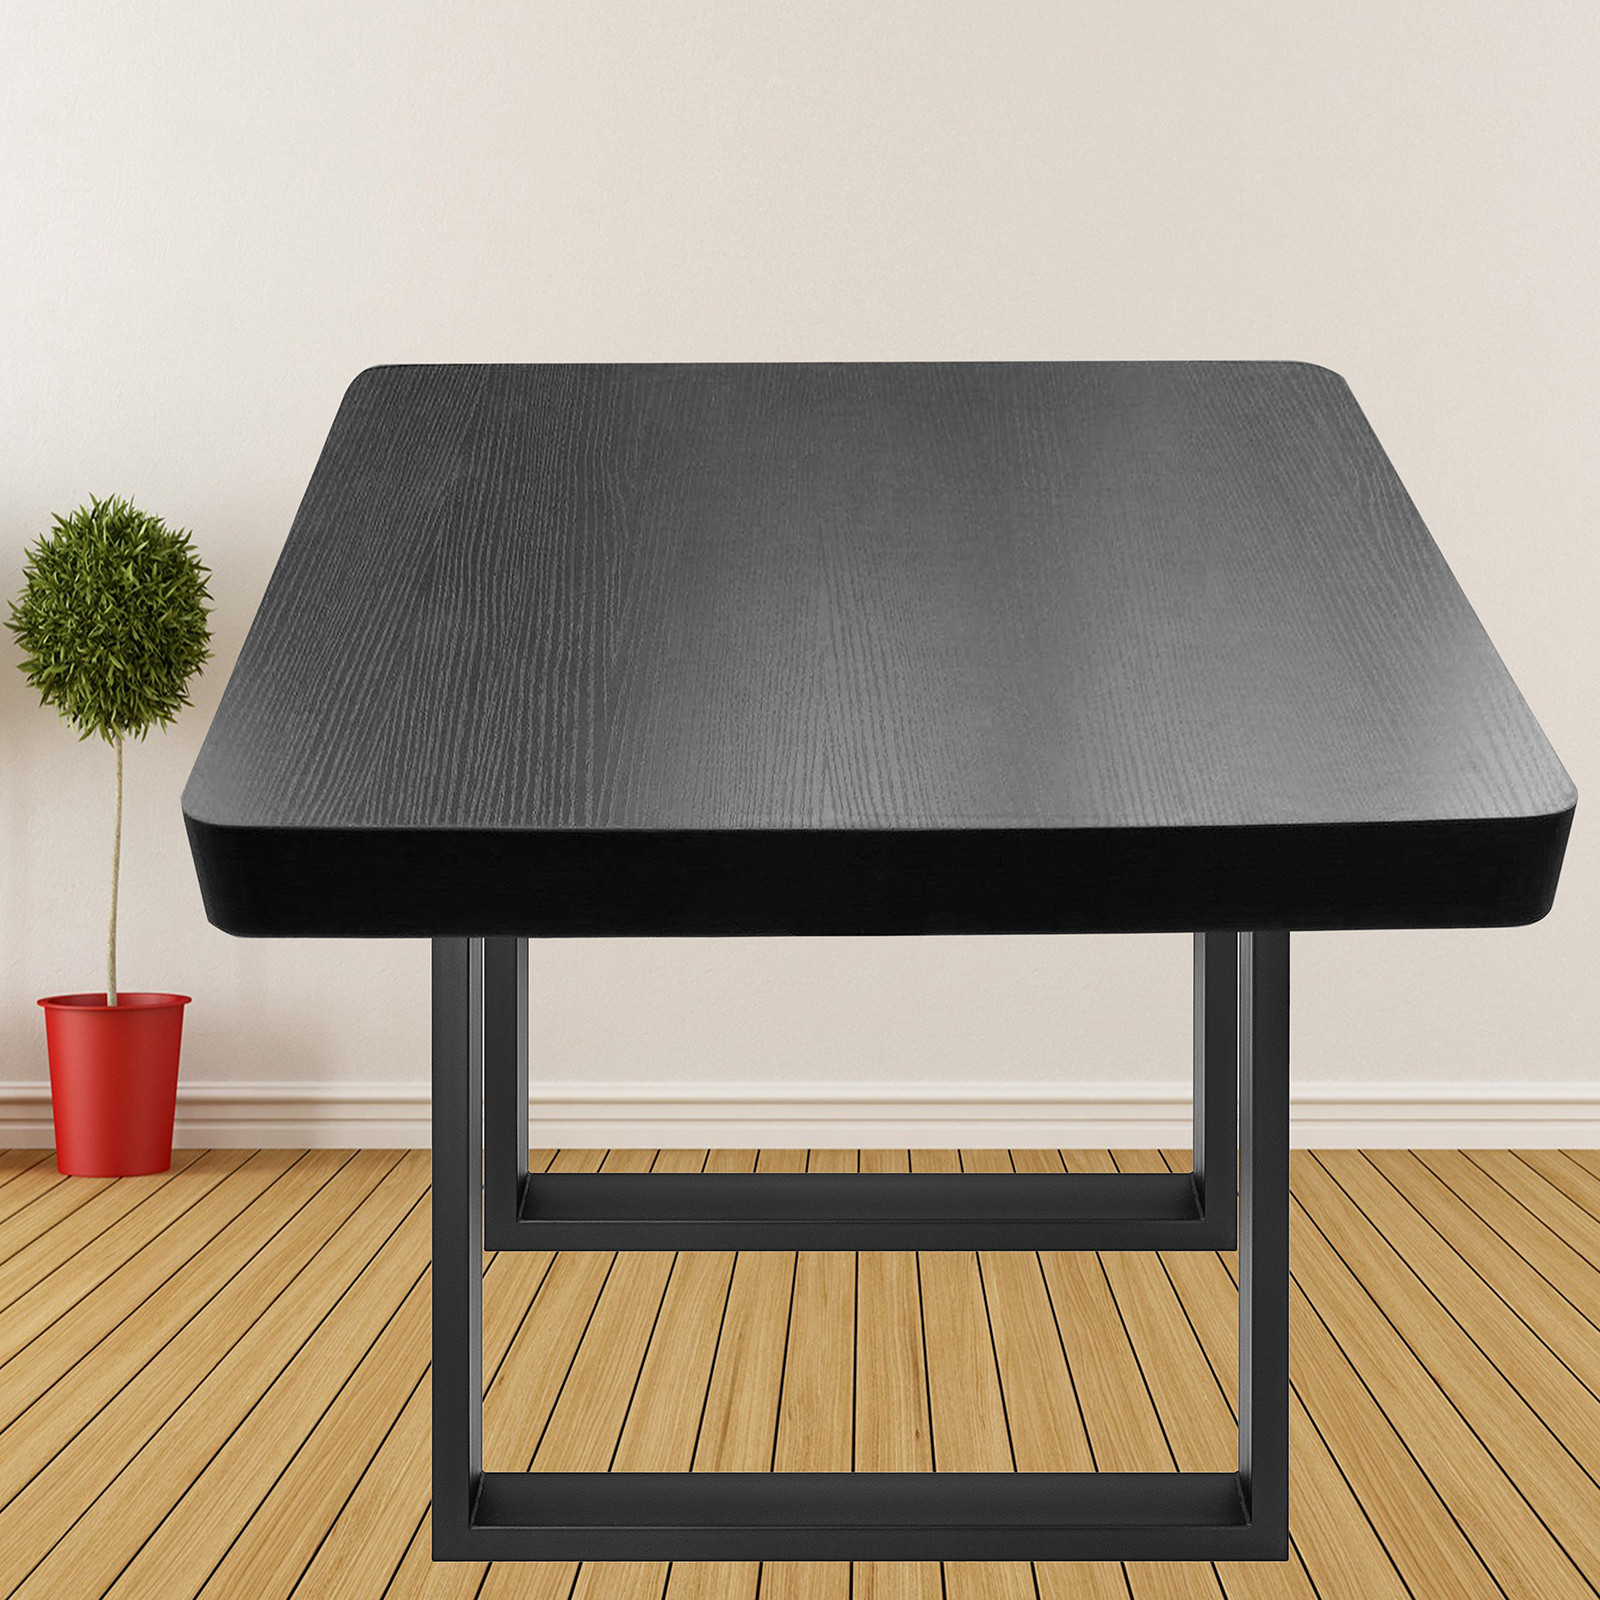 2X-Table-Legs-Black-Dining-Table-Leg-Heavy-Duty-Computer-Desk-Legs-Rectangle thumbnail 71